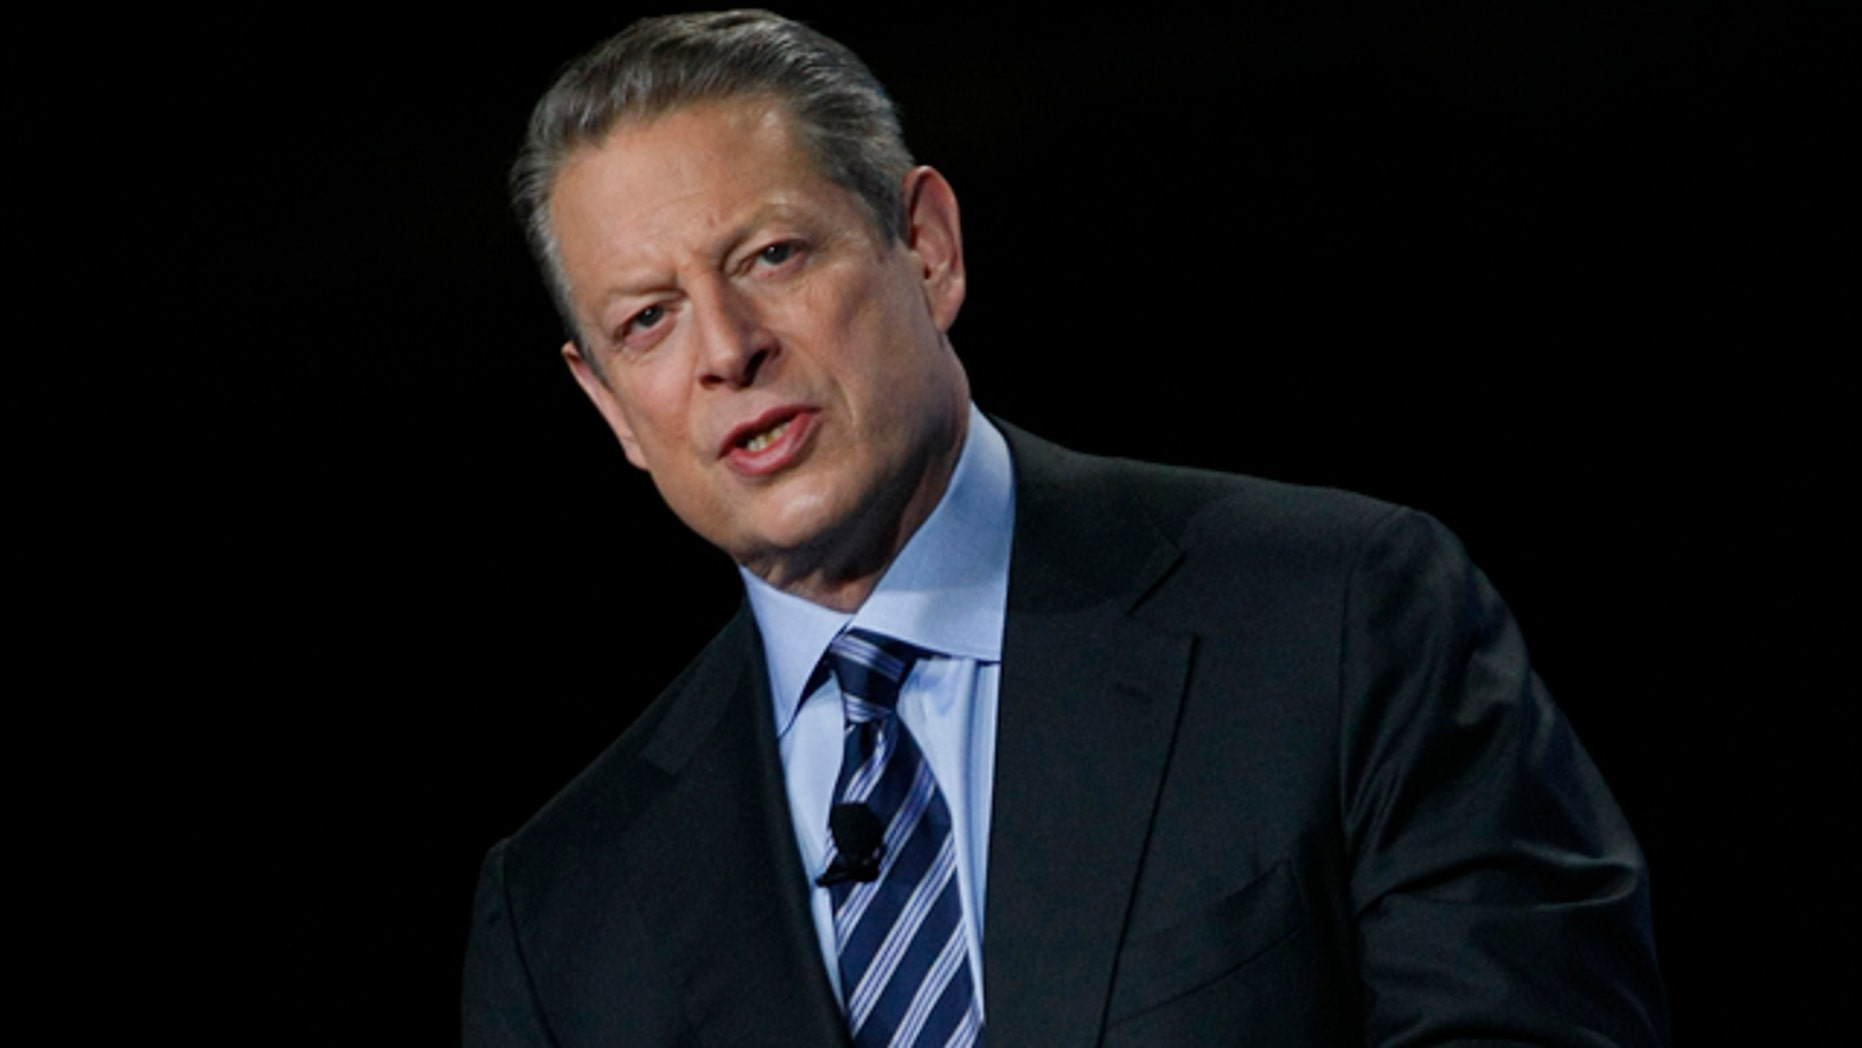 In this Nov. 11, 2009 file photo, former Vice President Al Gore speaks during the Greenbuild International Conference and Expo in Phoenix.